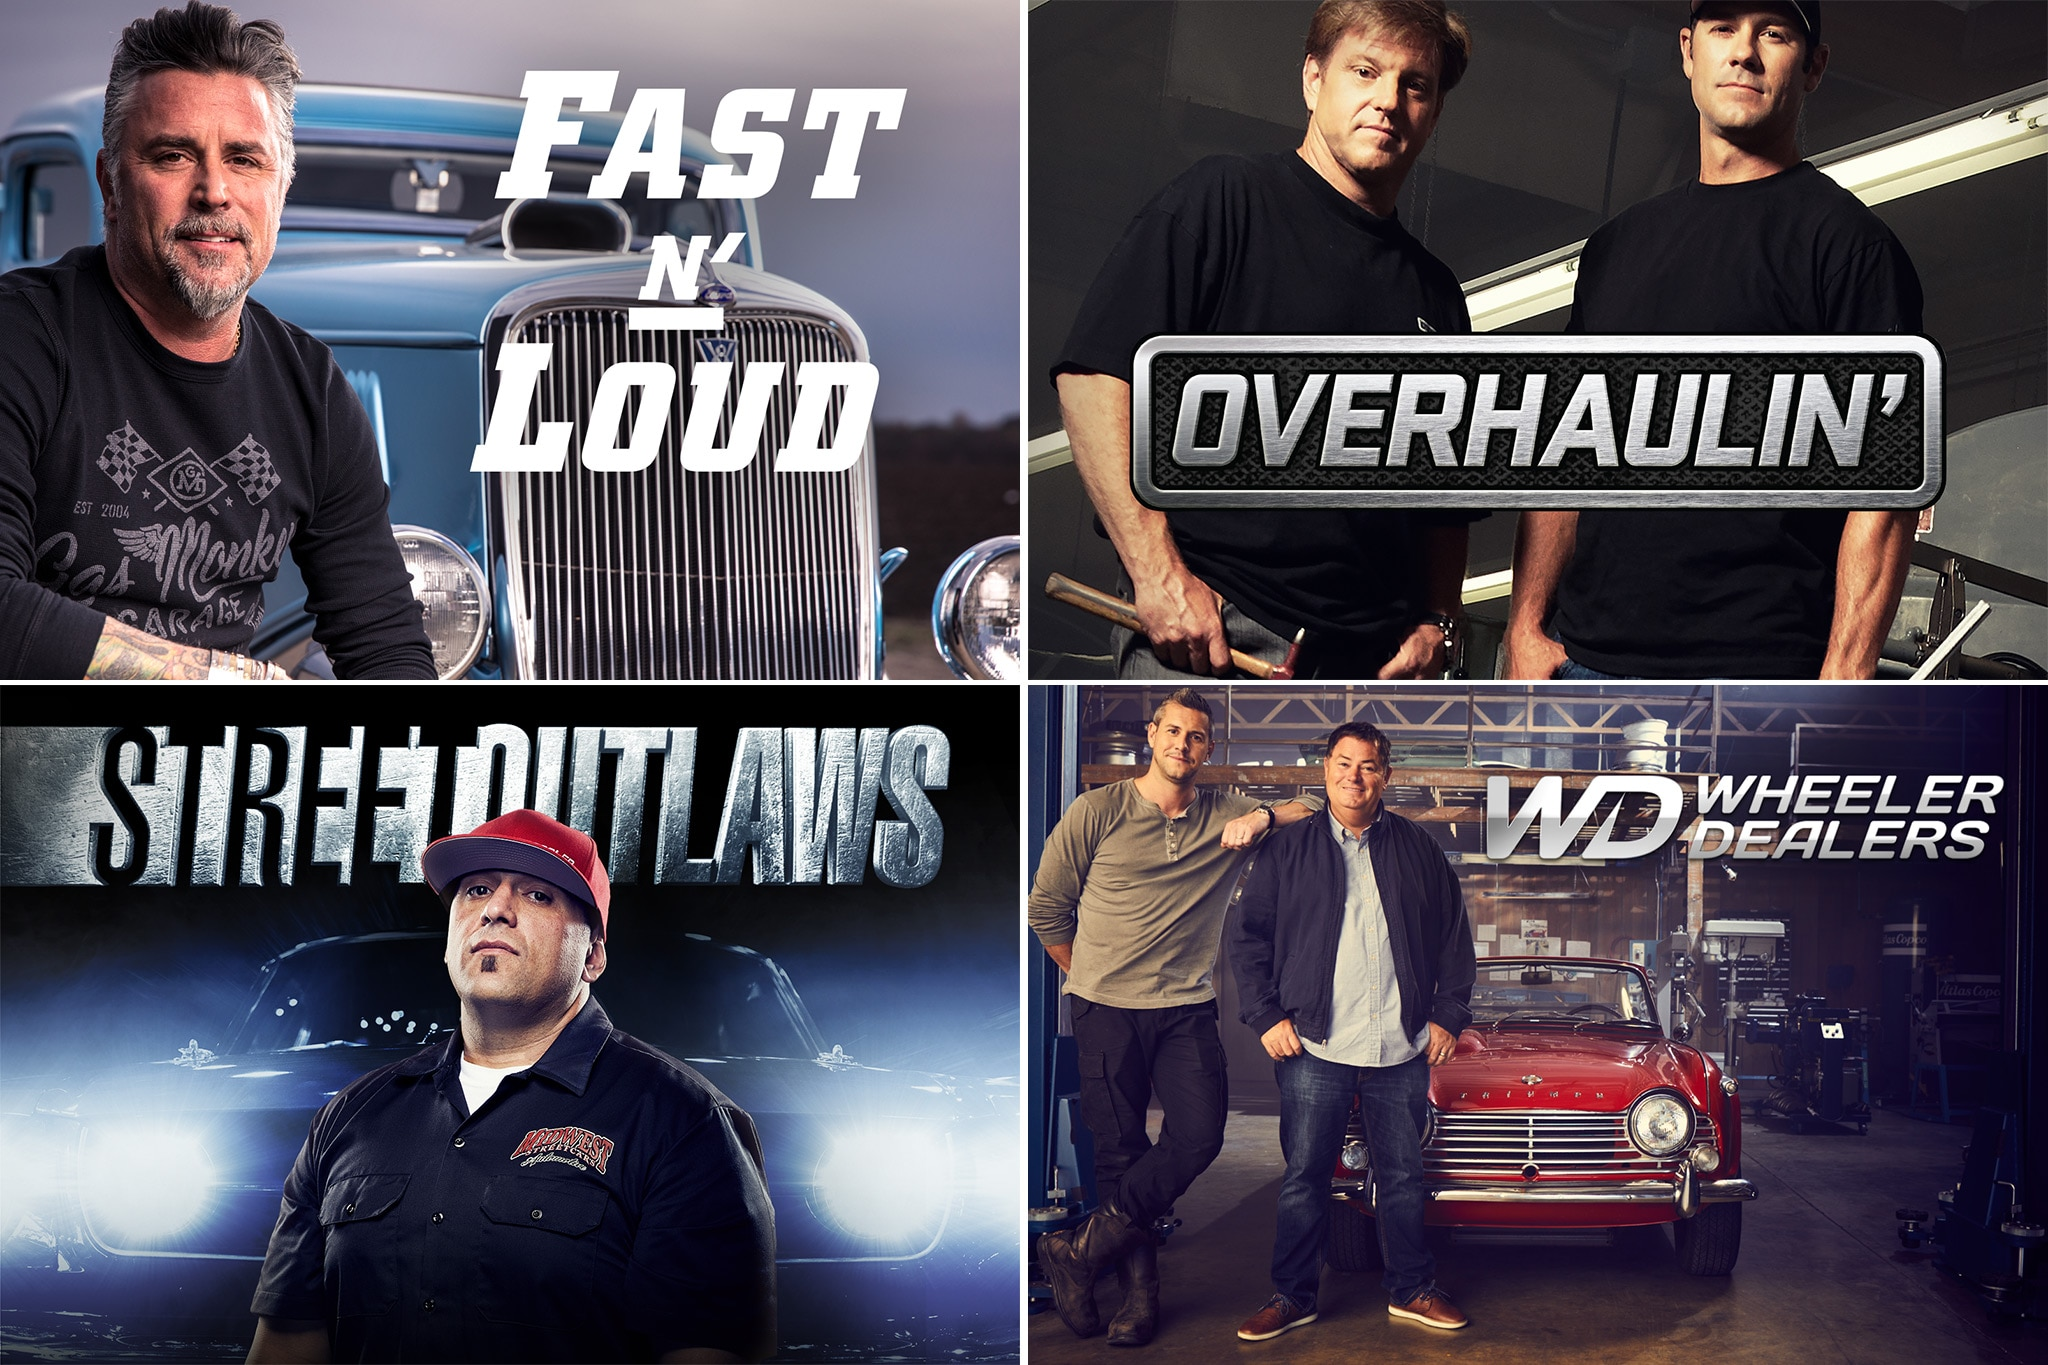 Discovery and velocity get fast n loud on motor trend for Motor trend on demand promo code